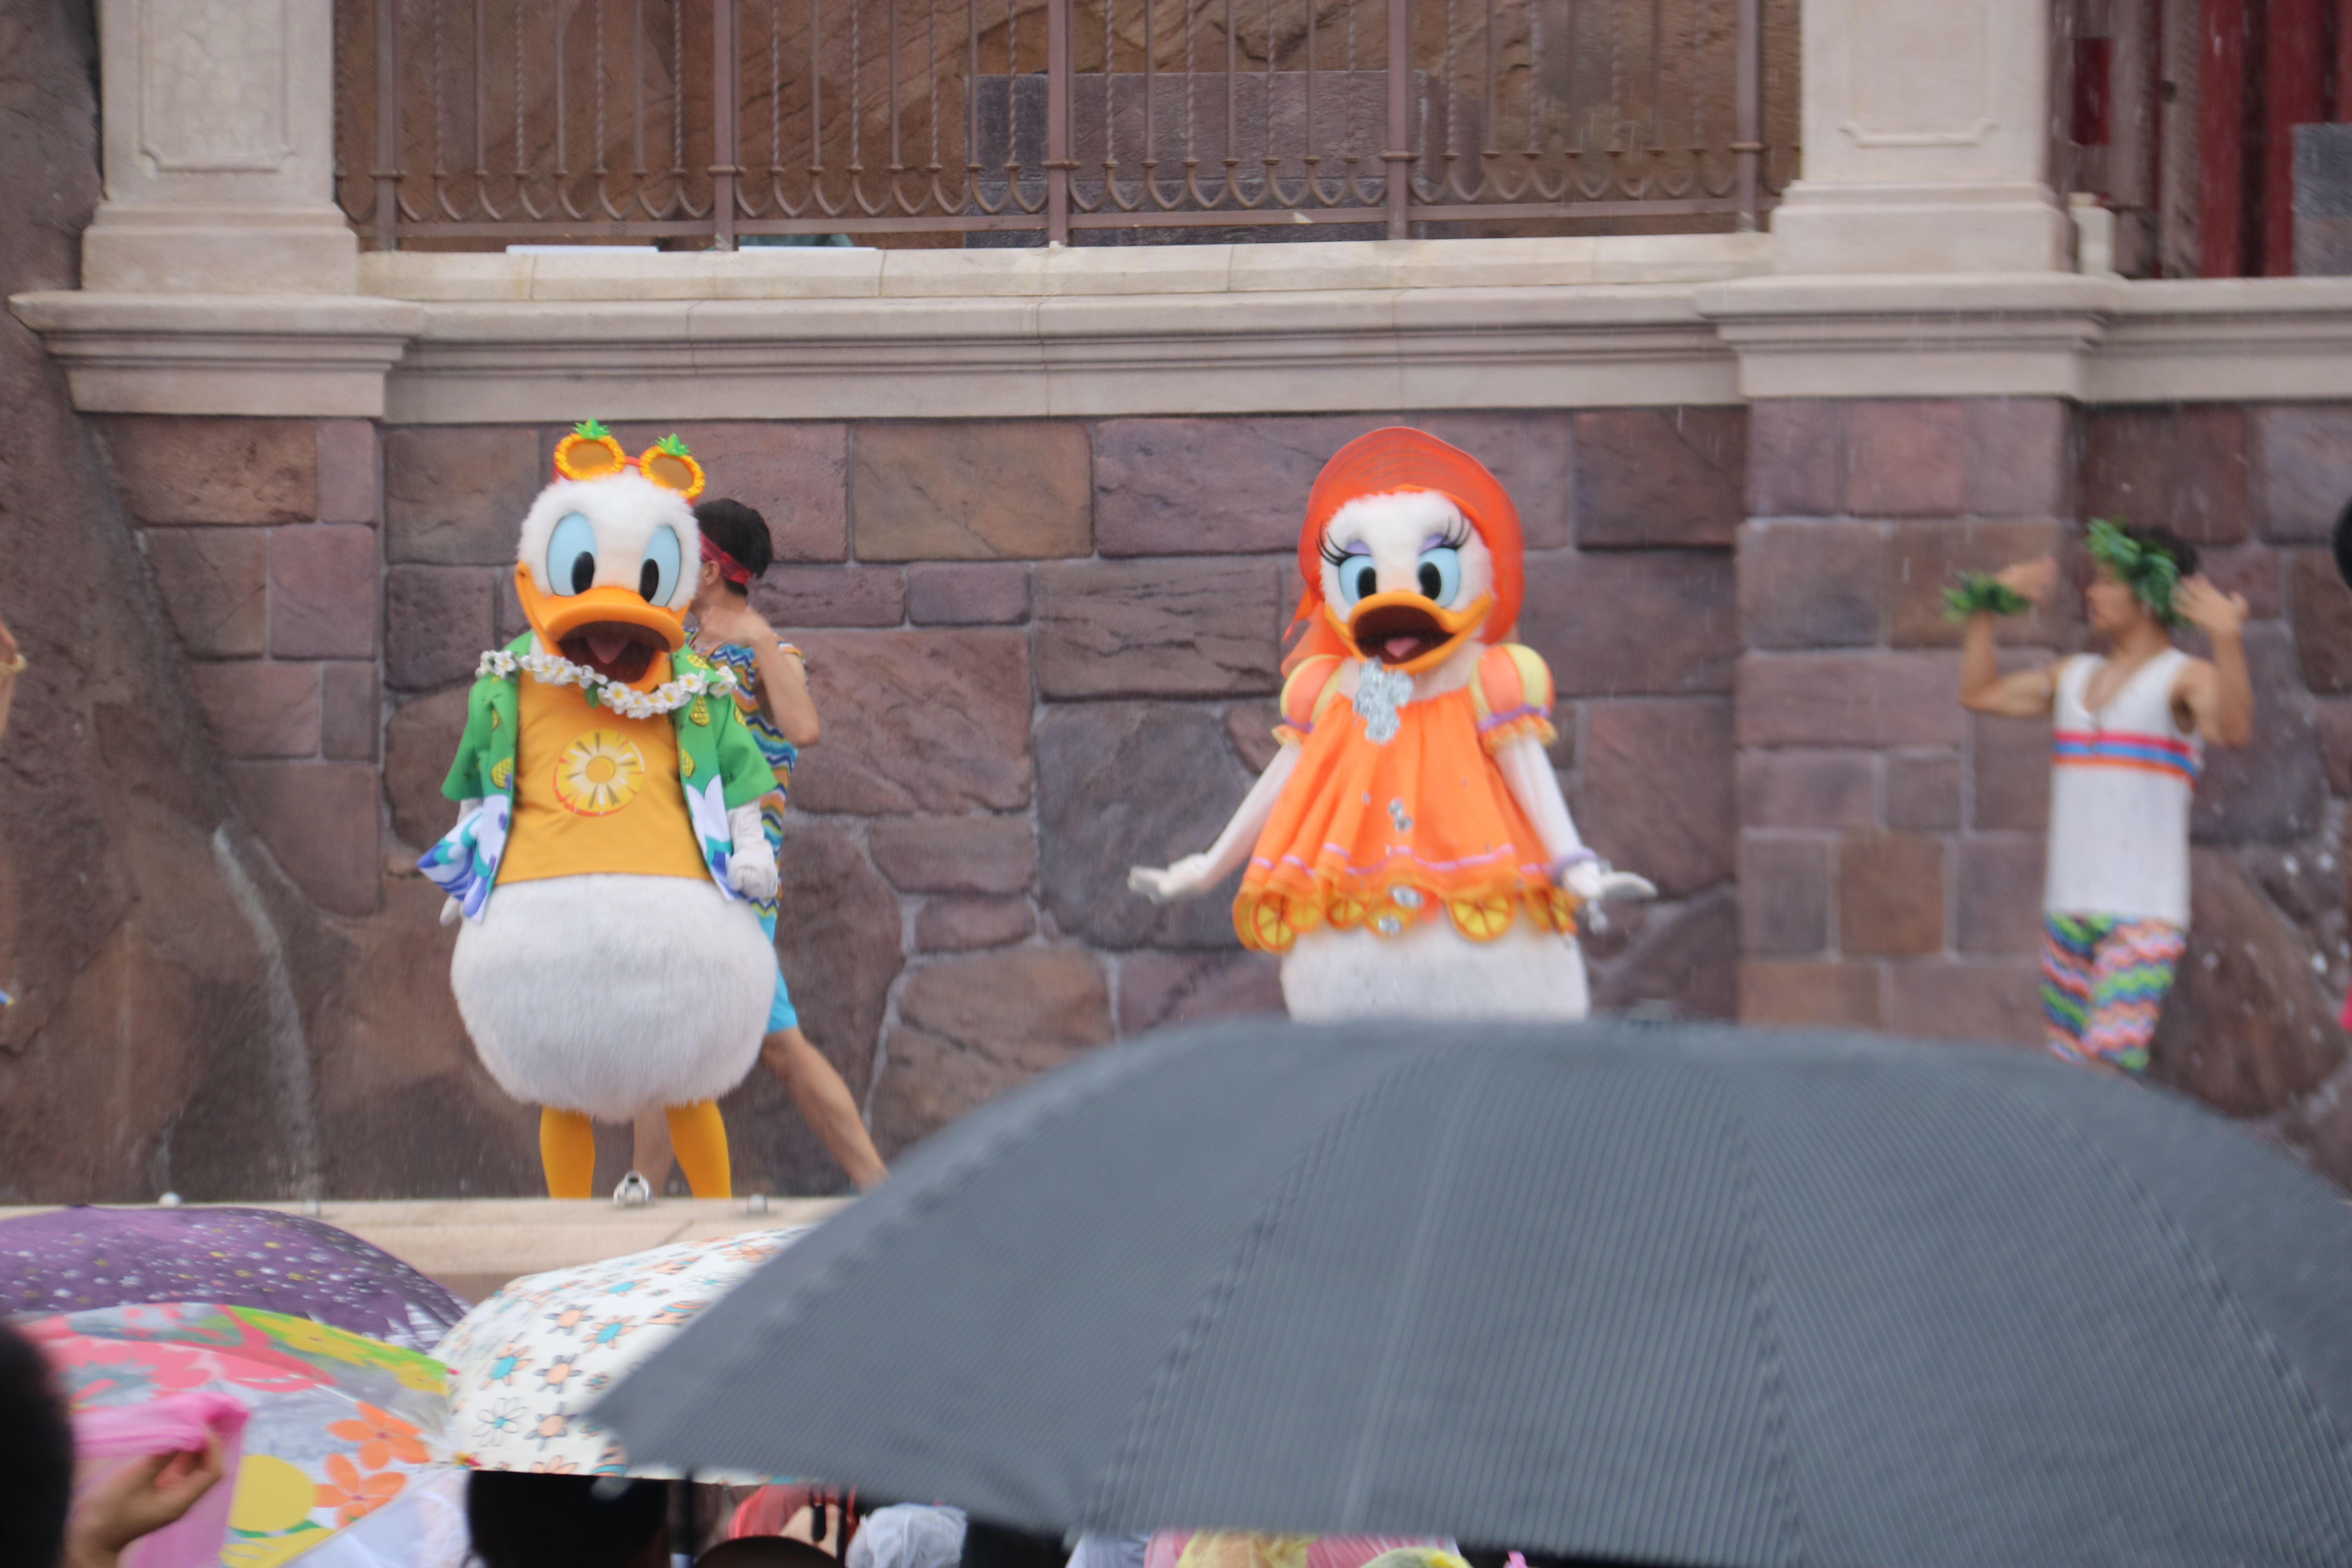 Opening Donald and Daisy